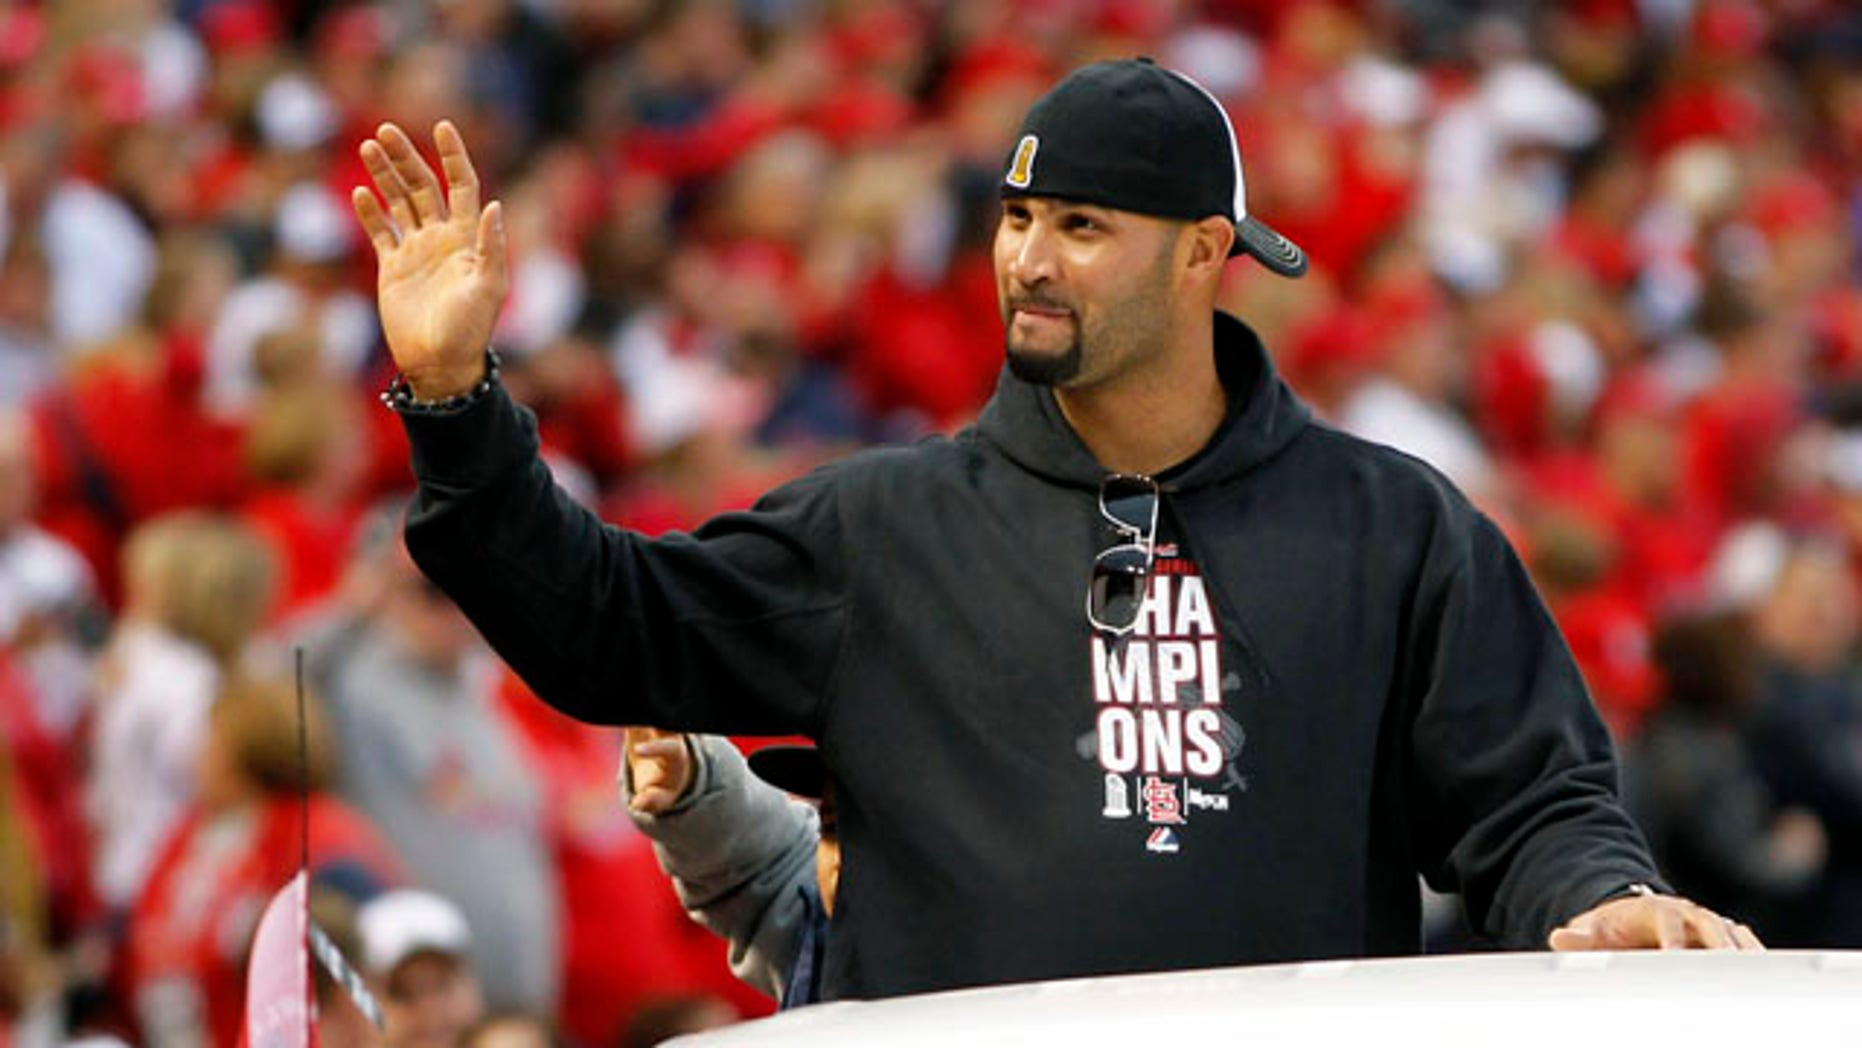 St. Louis Cardinals' Albert Pujols waves to fans at Busch Stadium during a victory parade in celebration of the Cardinals' 11th World Series victory, Sunday, Oct. 30, 2011, in St. Louis. The free agent has reportedly been wooed by the Cardinals and the Marlins. (AP Photo/Jeff Roberson)